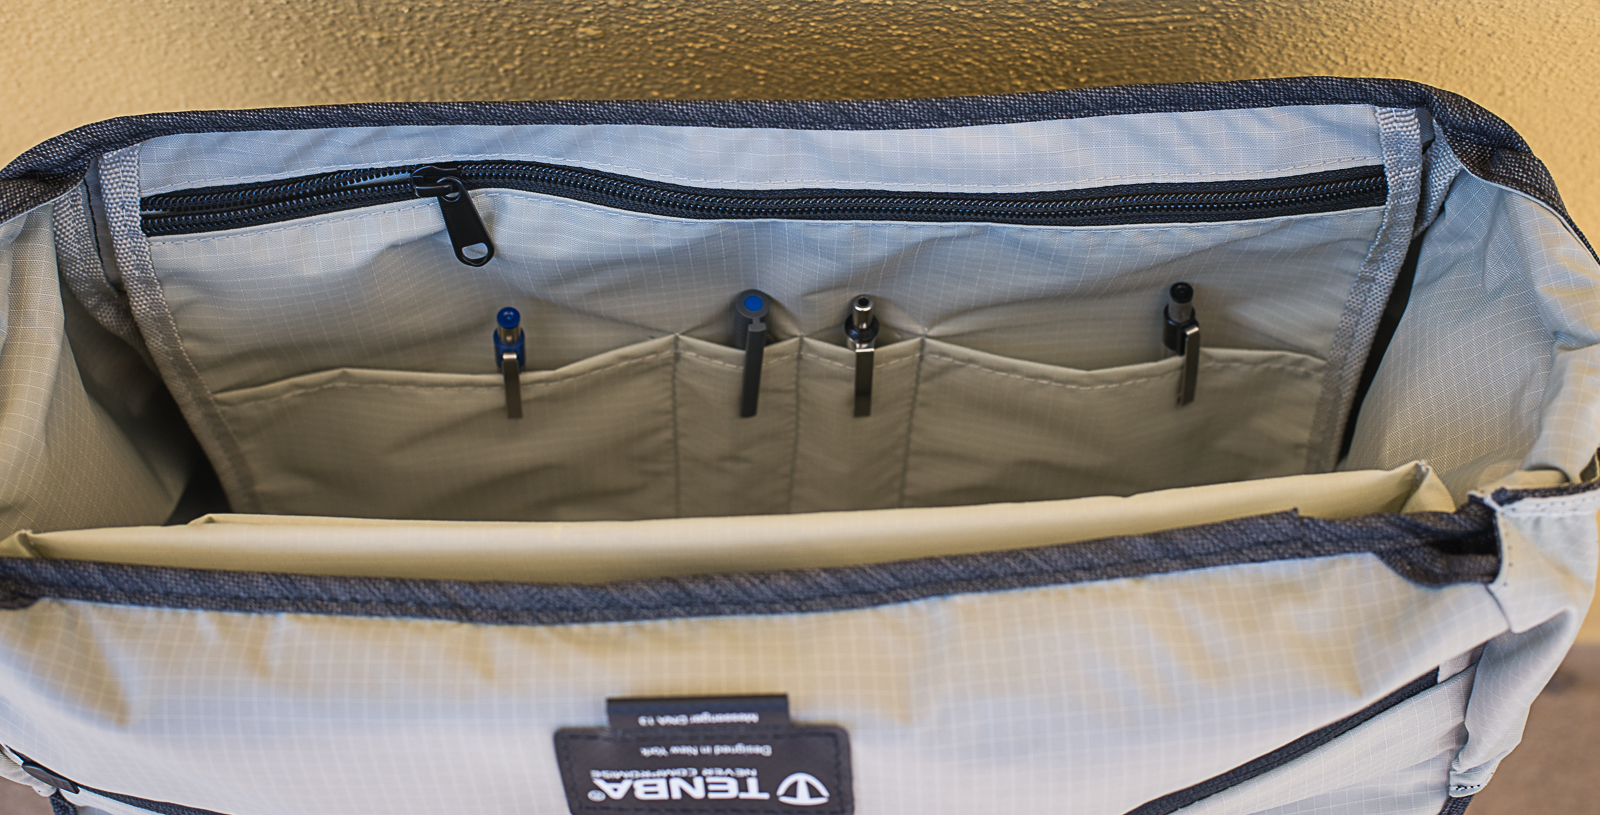 The zipper pocket in the front is a large slip pocket.